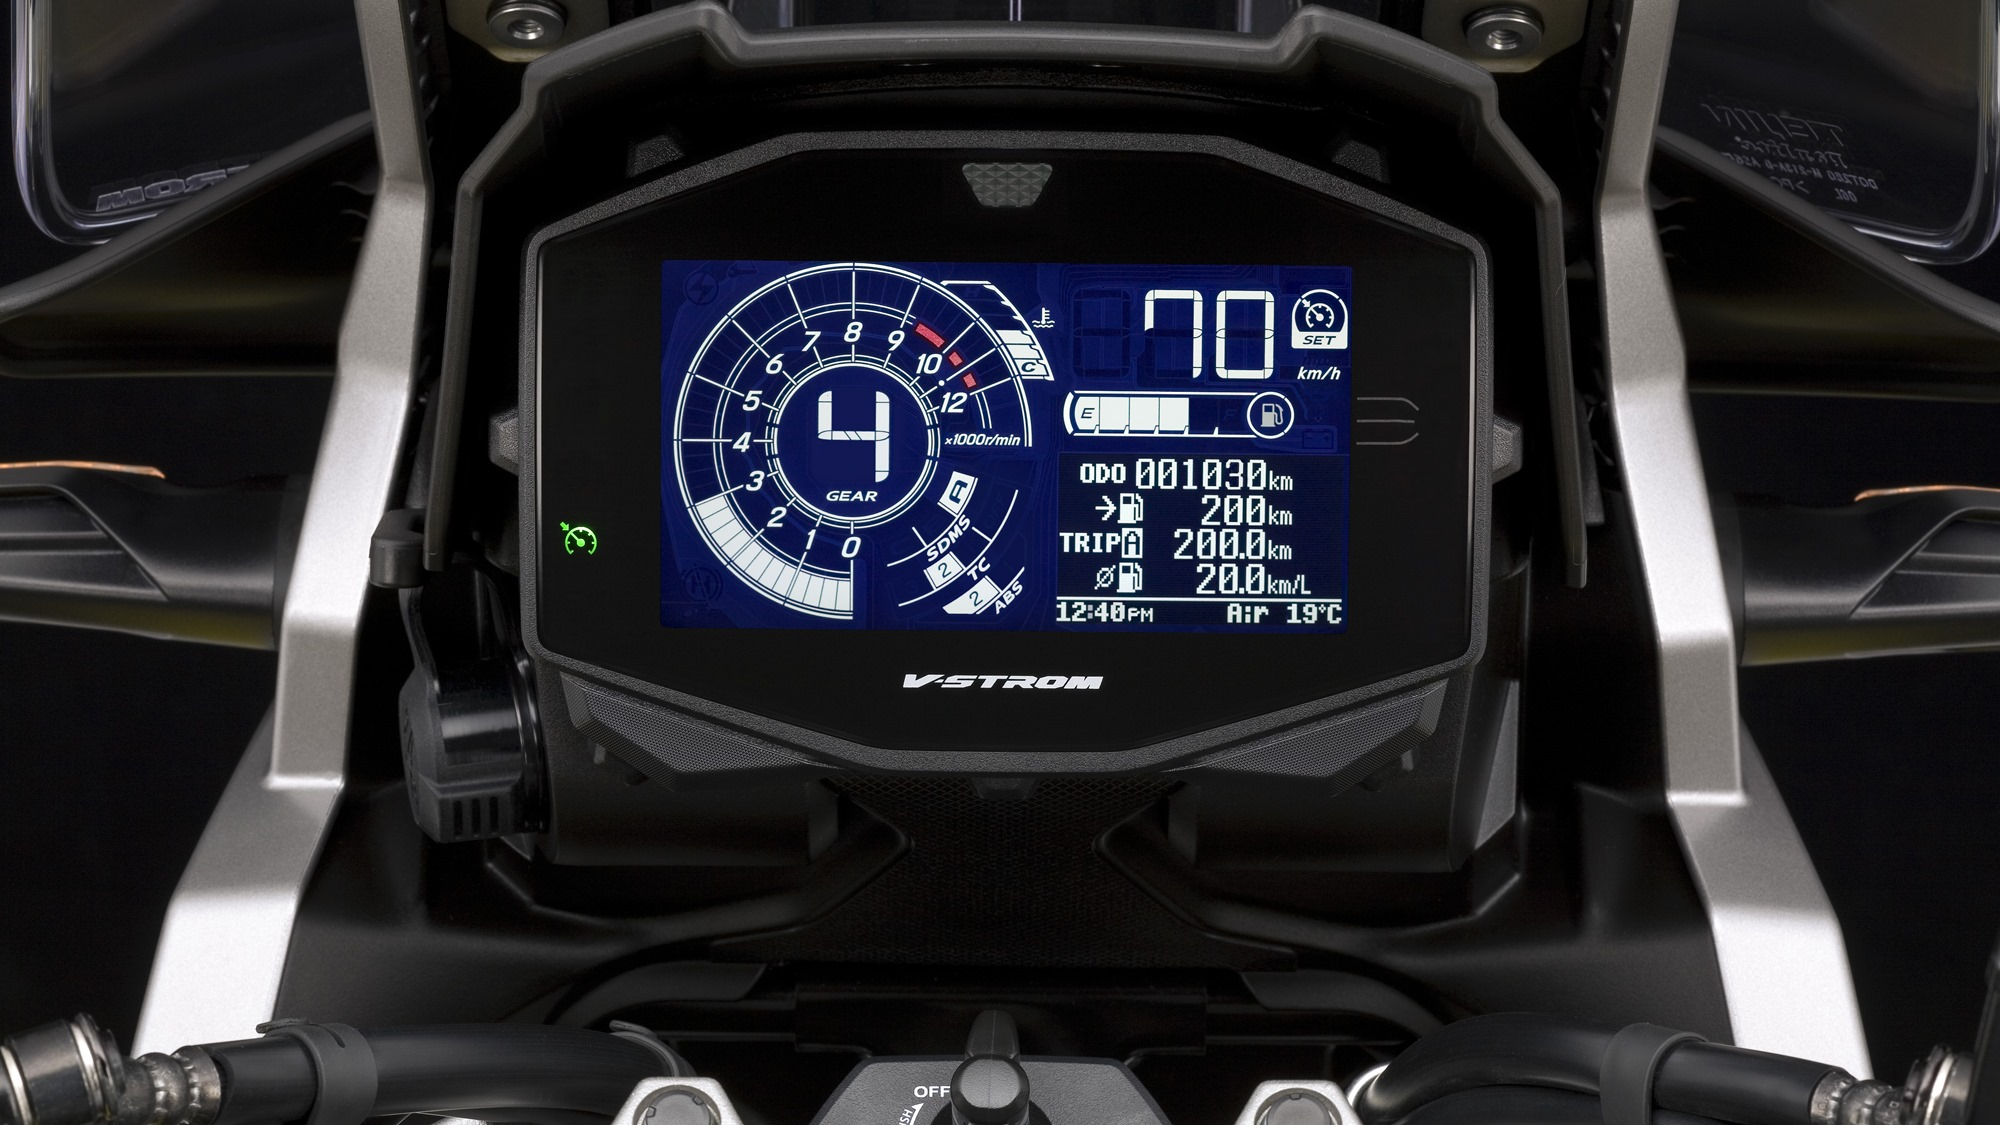 Suzuki V-Strom 1050XT and V-Strom 1050 digital meter tft screen